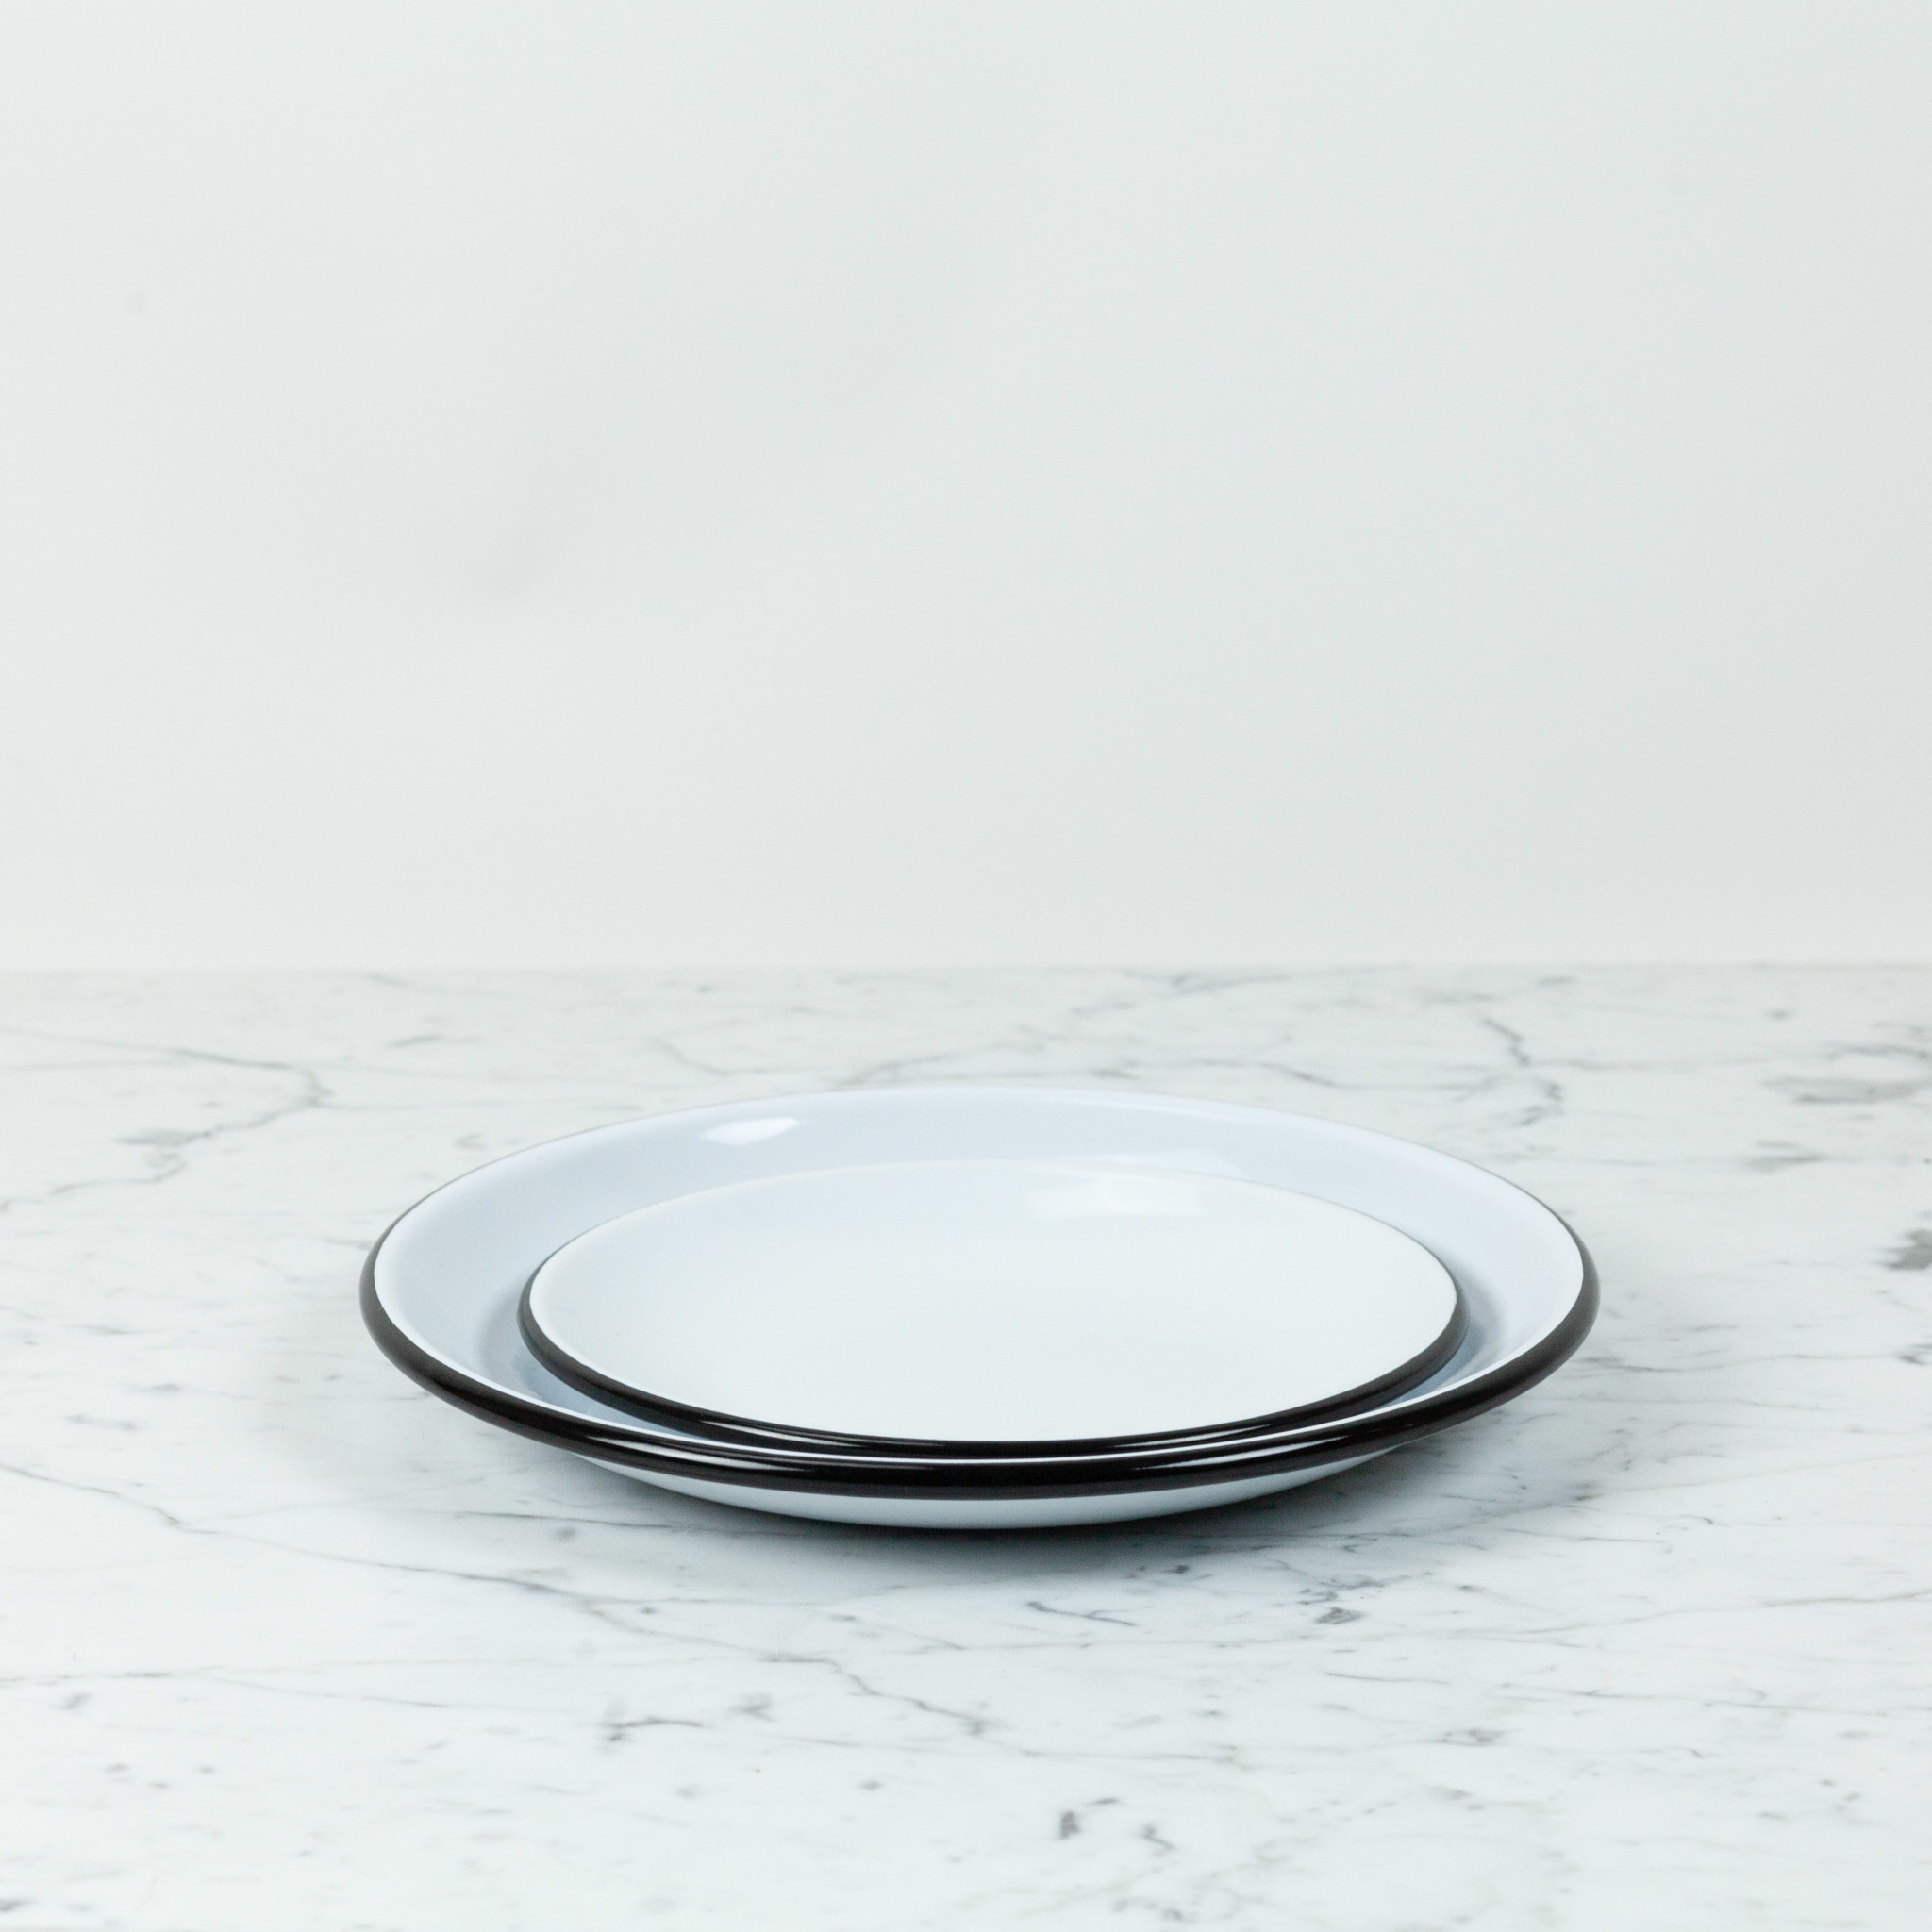 Black + White Enamel Smooth Coupe Style Dinner Plate